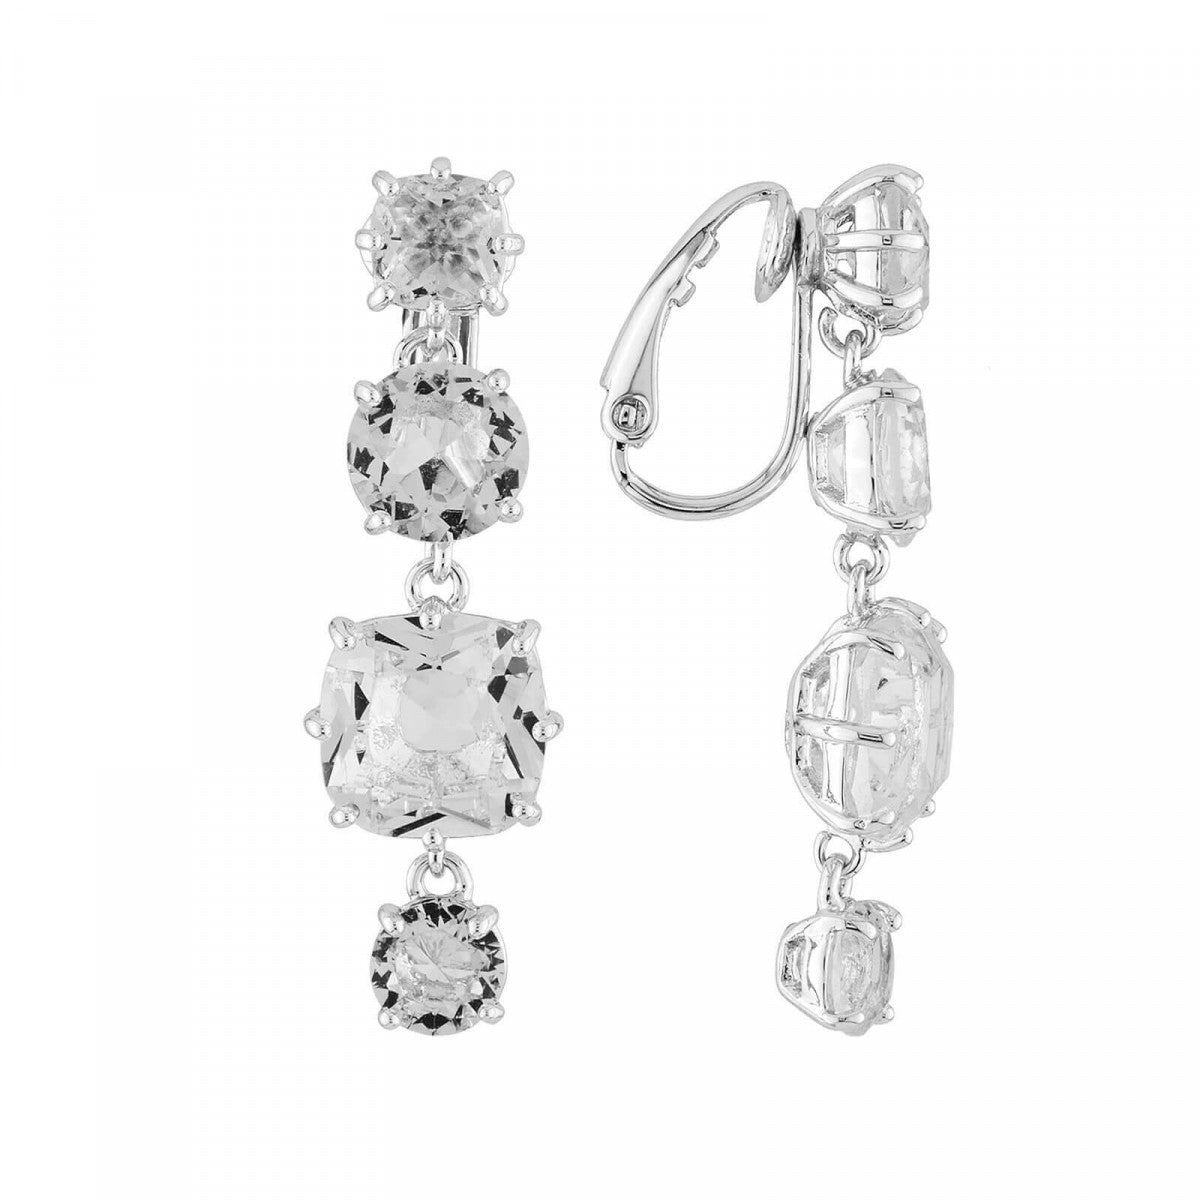 La Diamantine 4 Stones Clip-on Earrings